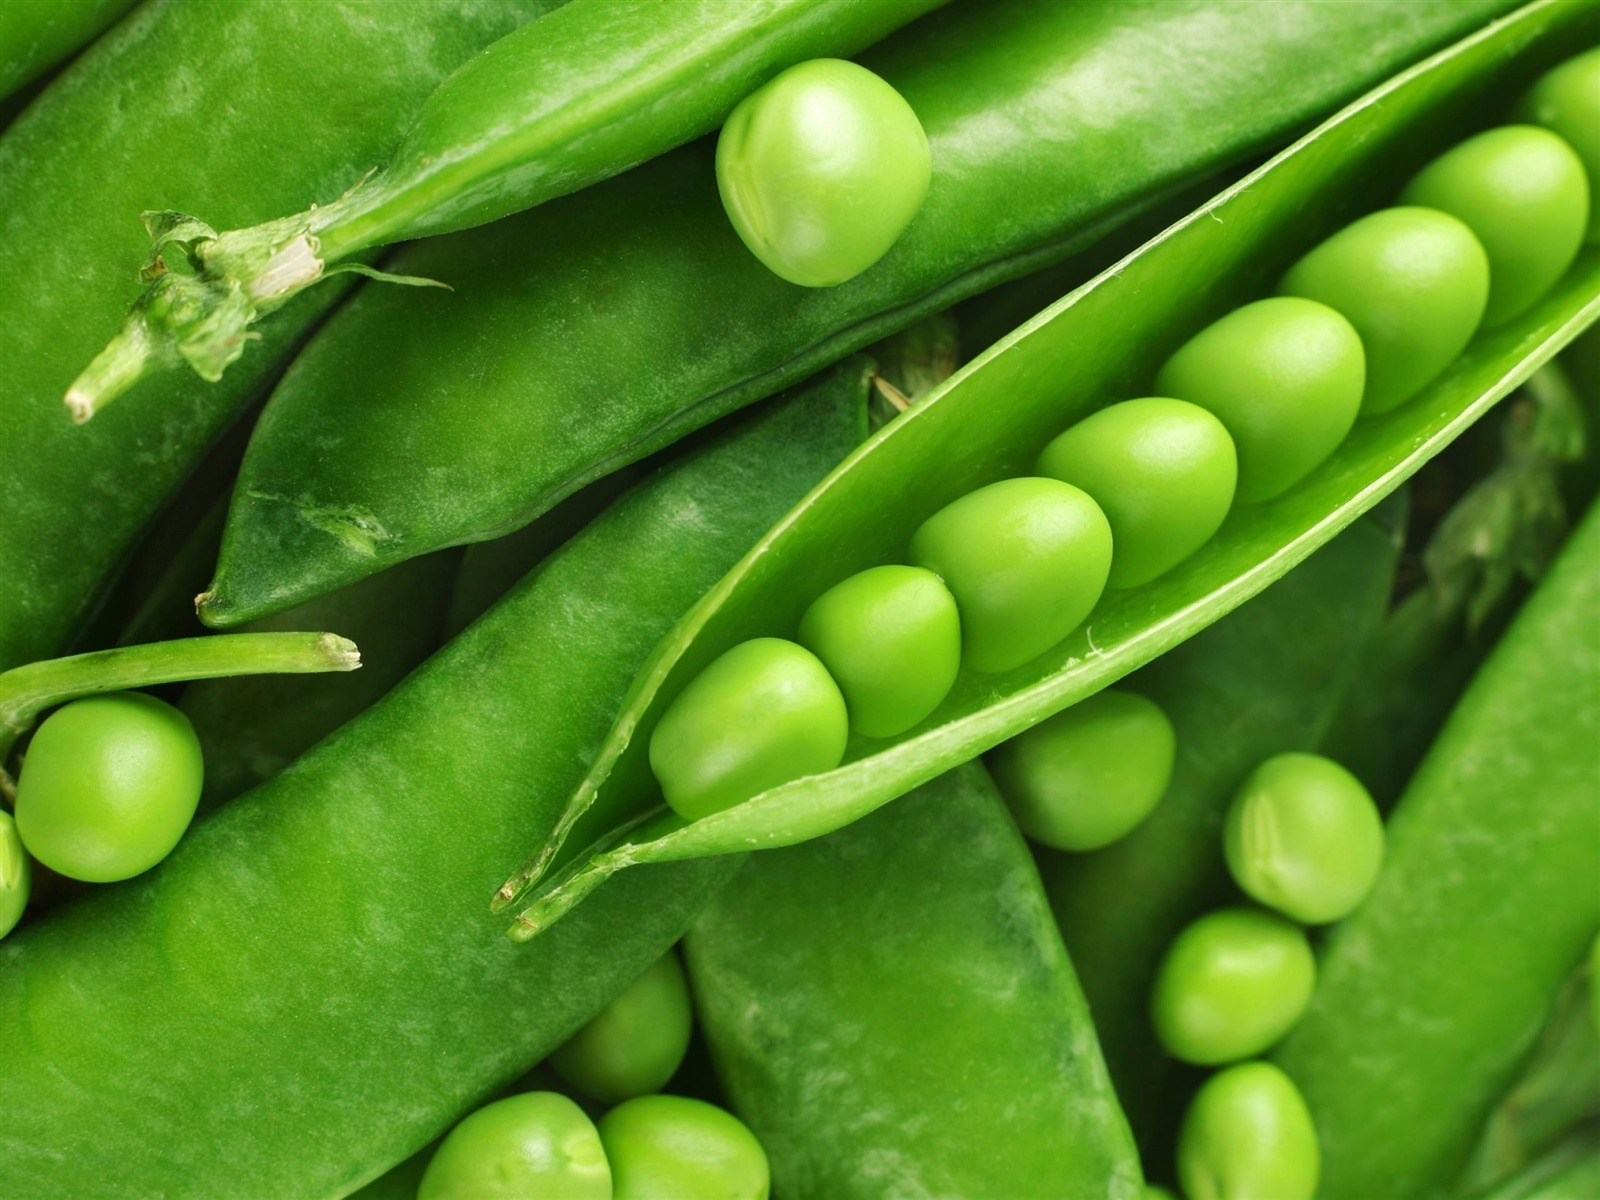 fresh_green_peas-Plant_close-up_wallpaper_1600x1200